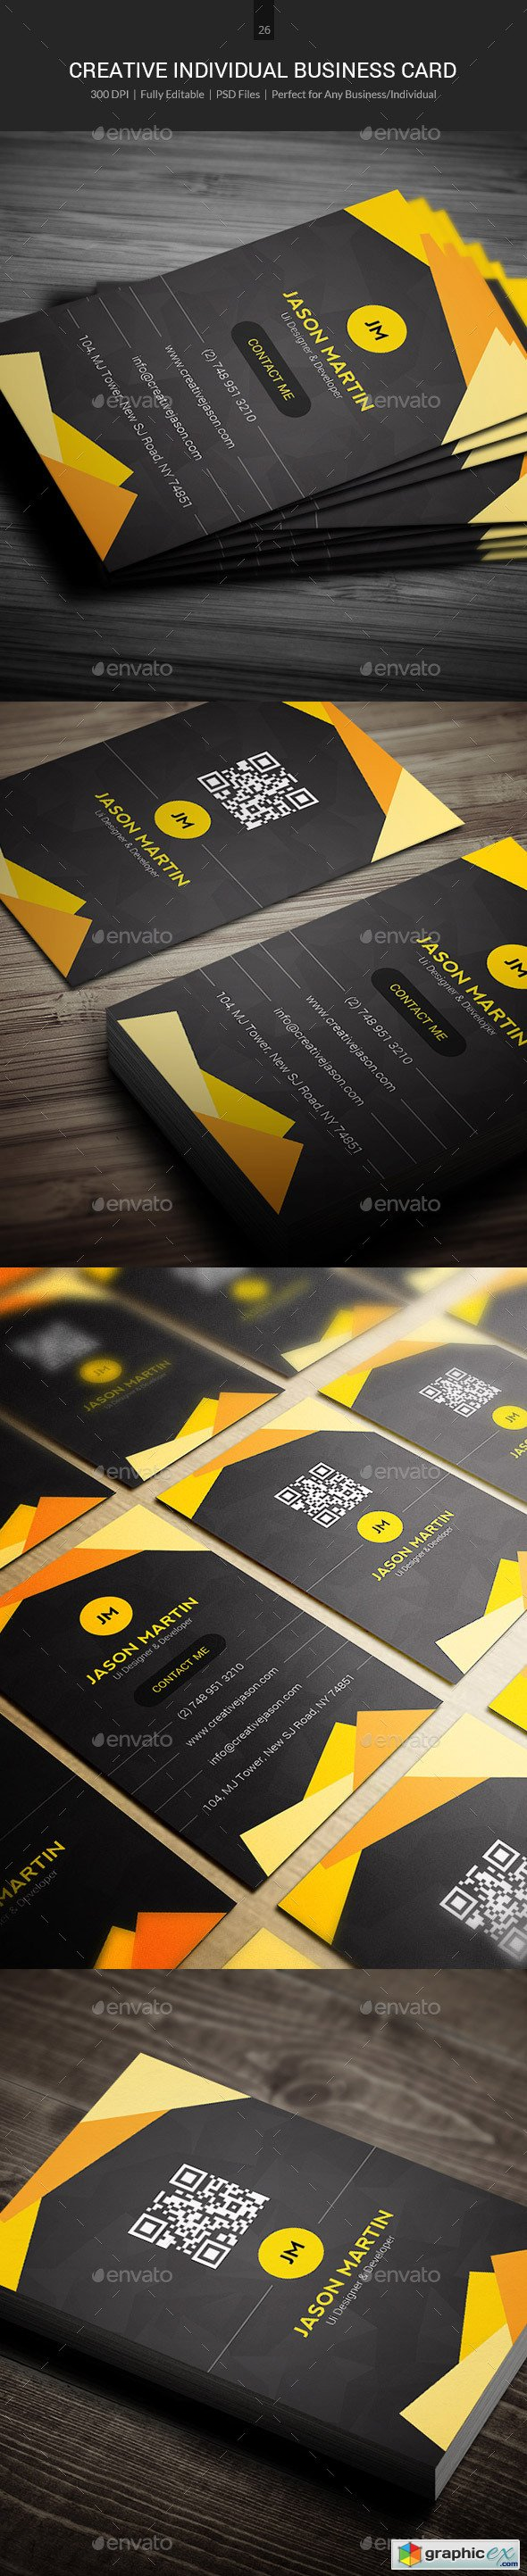 Creative Individual Business Card - 26